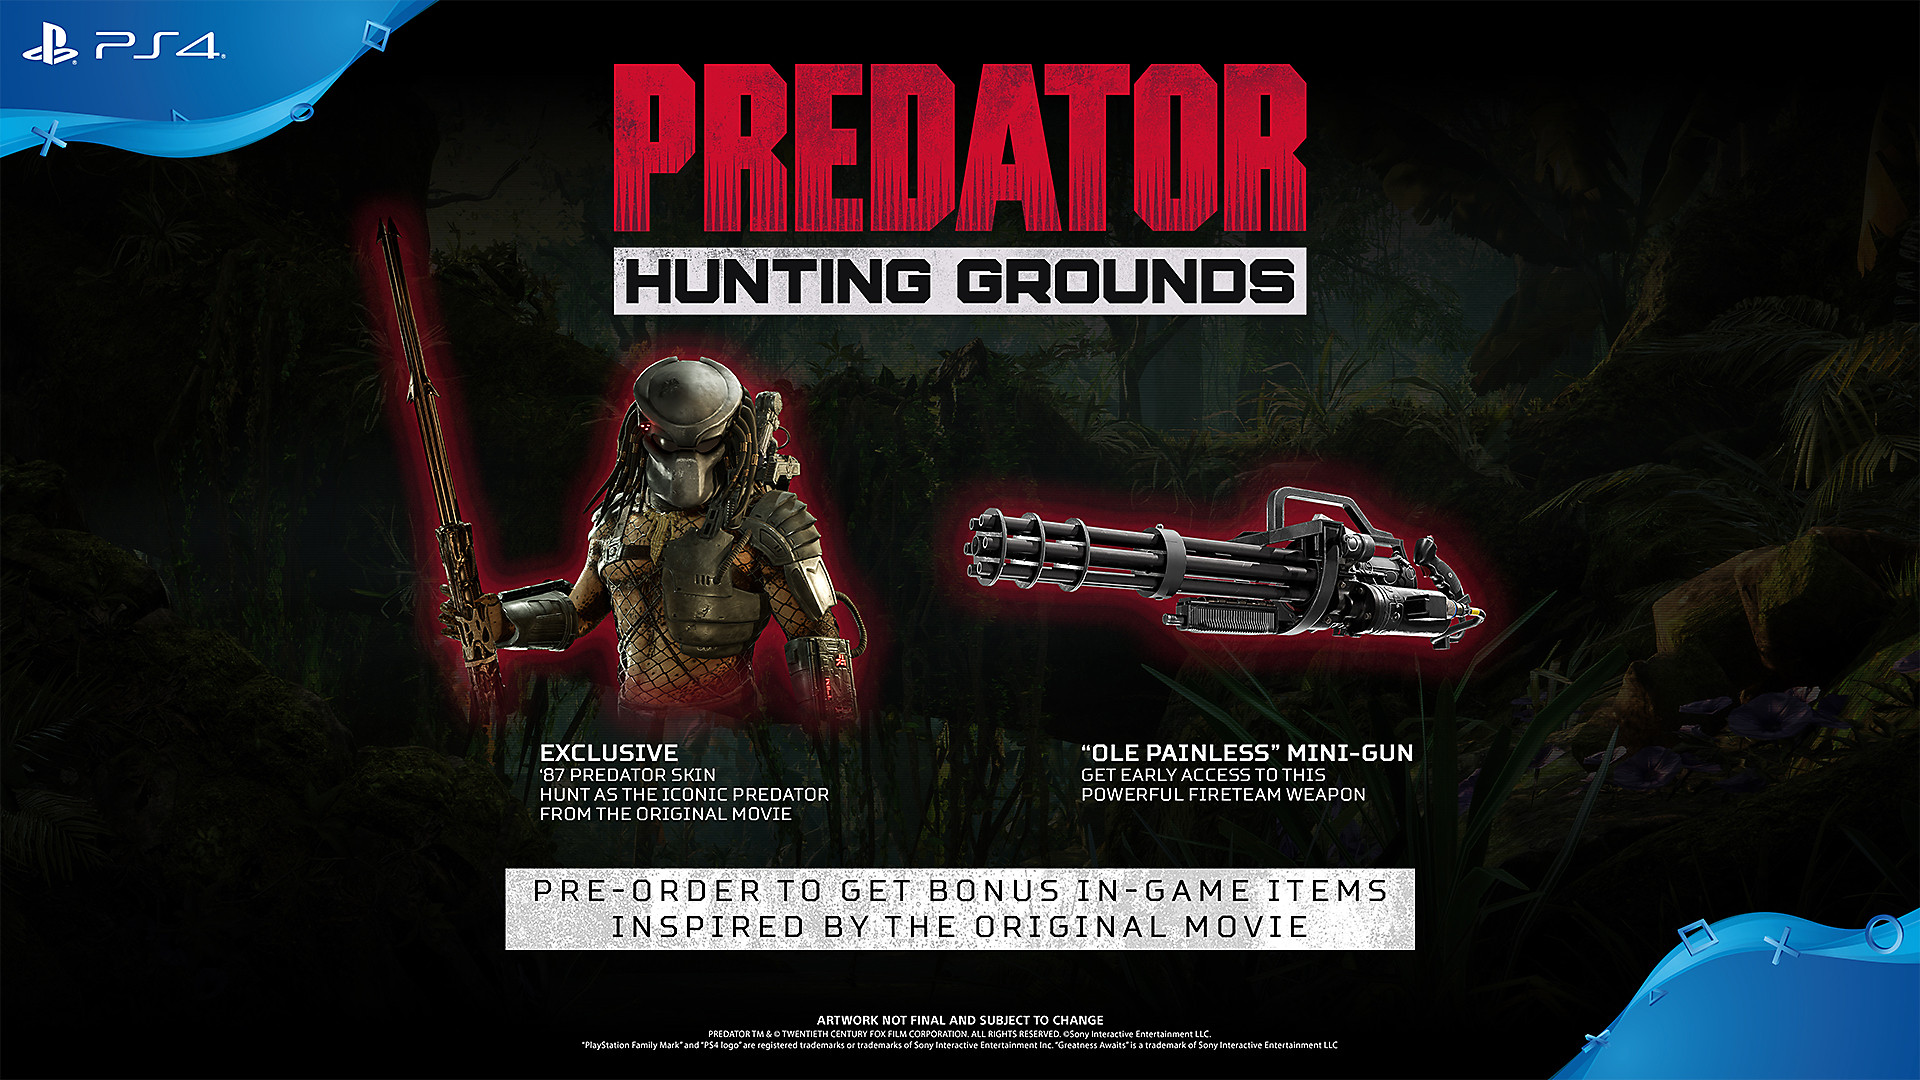 "Exclusive '87 Predator Skin Order early to hunt as the iconic Predator. ""Ole Painless"" Mini-Gun Get early access to this powerful Fireteam weapon. It's perfect for those ""who don't have time to bleed"".  Pre-order on the PlayStation™Store for additional bonus content:  Instant rewards including a Predator: Hunting Grounds Pre-Order Dynamic Theme and PlayStation™Network Avatar set."